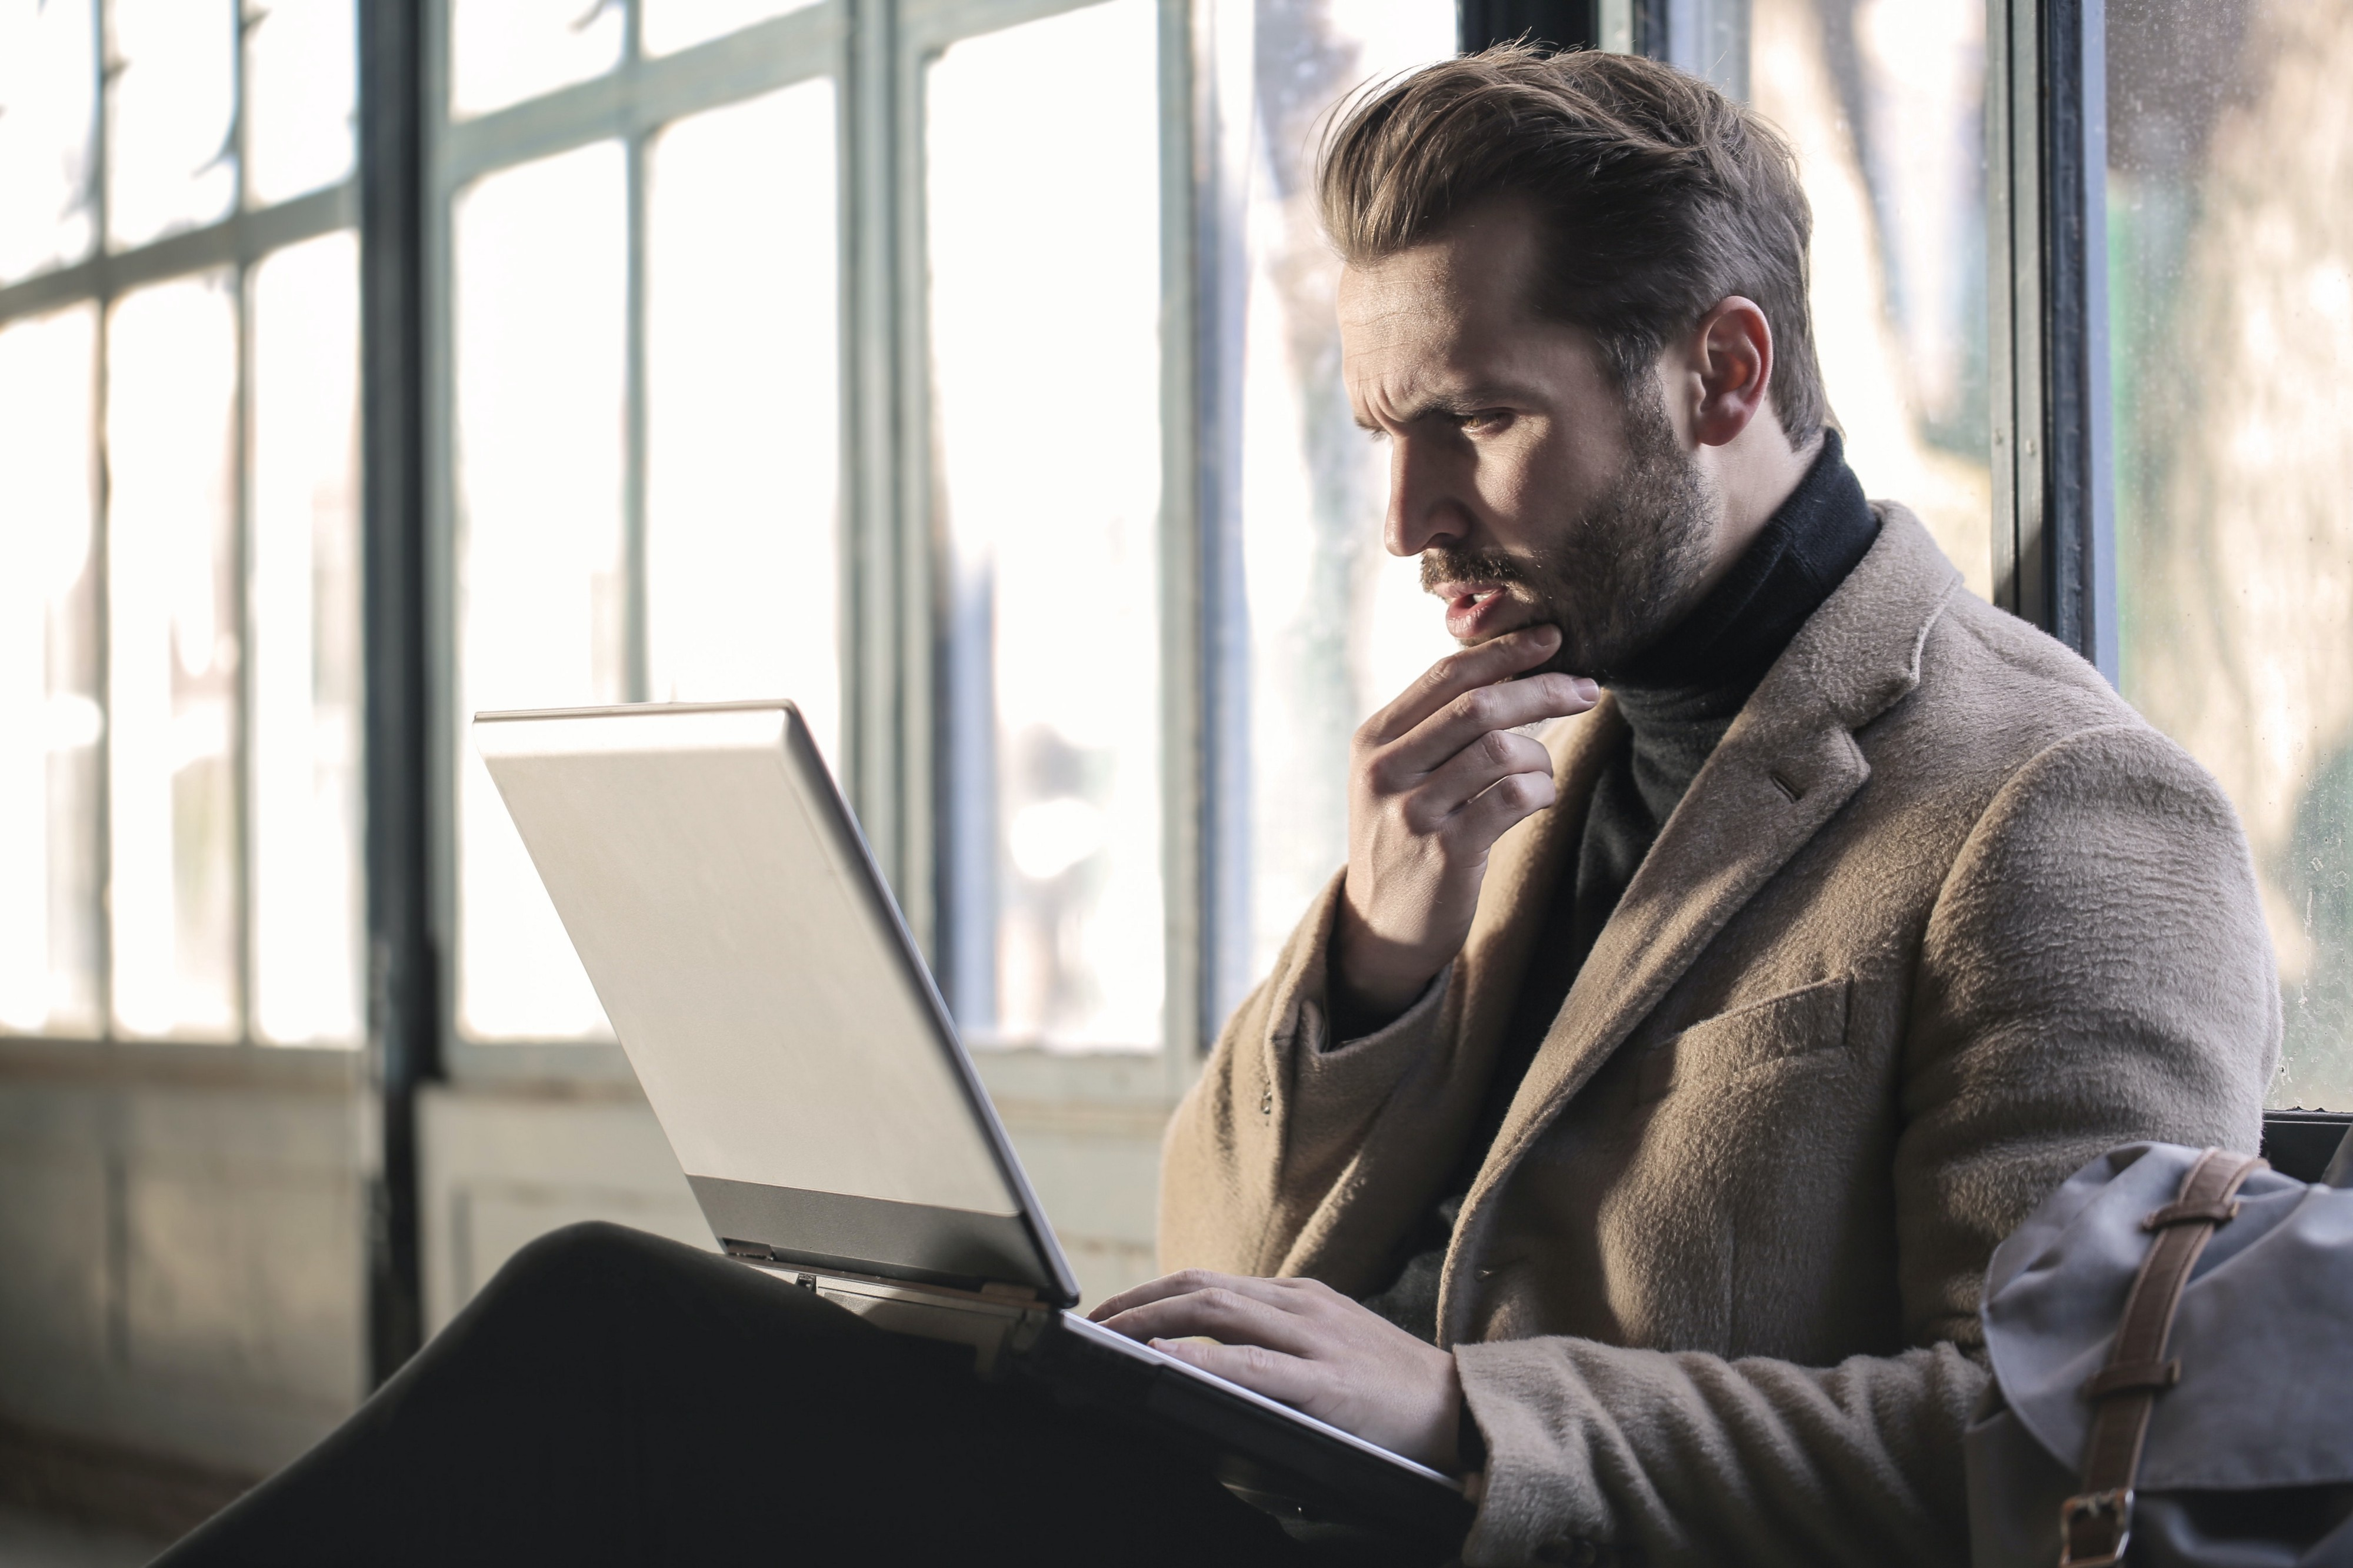 Man sitting and looking at laptop